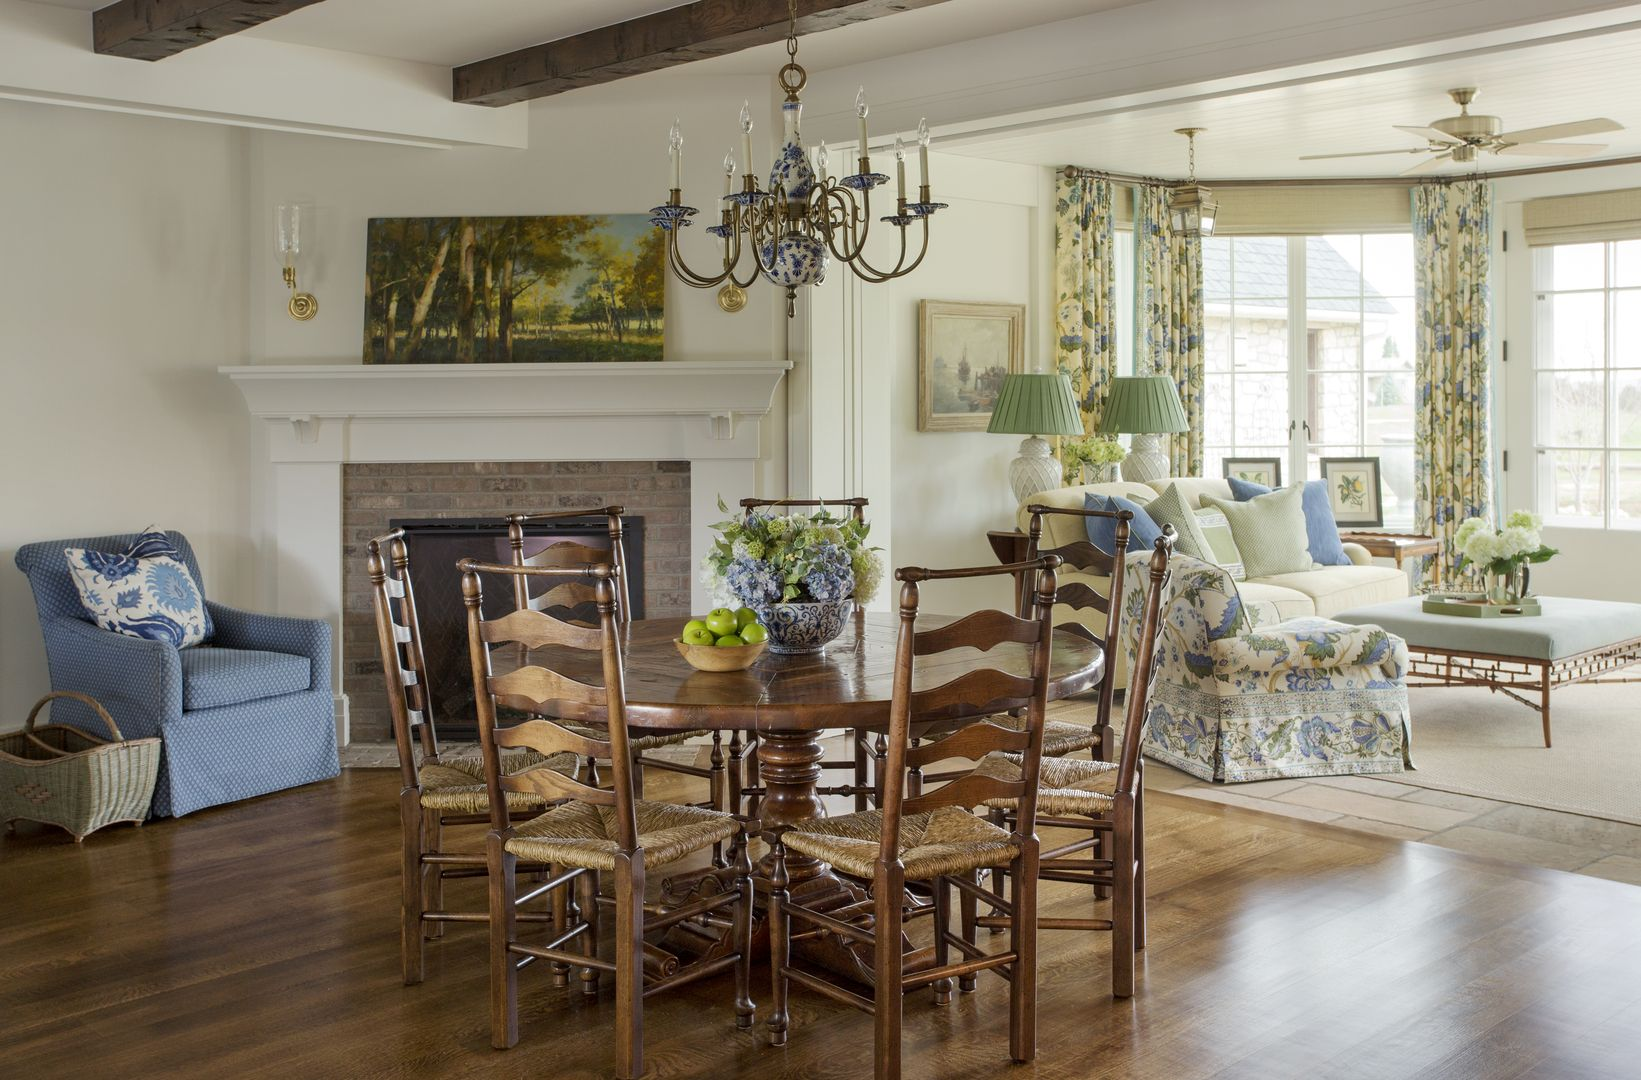 New Construction Of A Traditional Family Home With A Classic